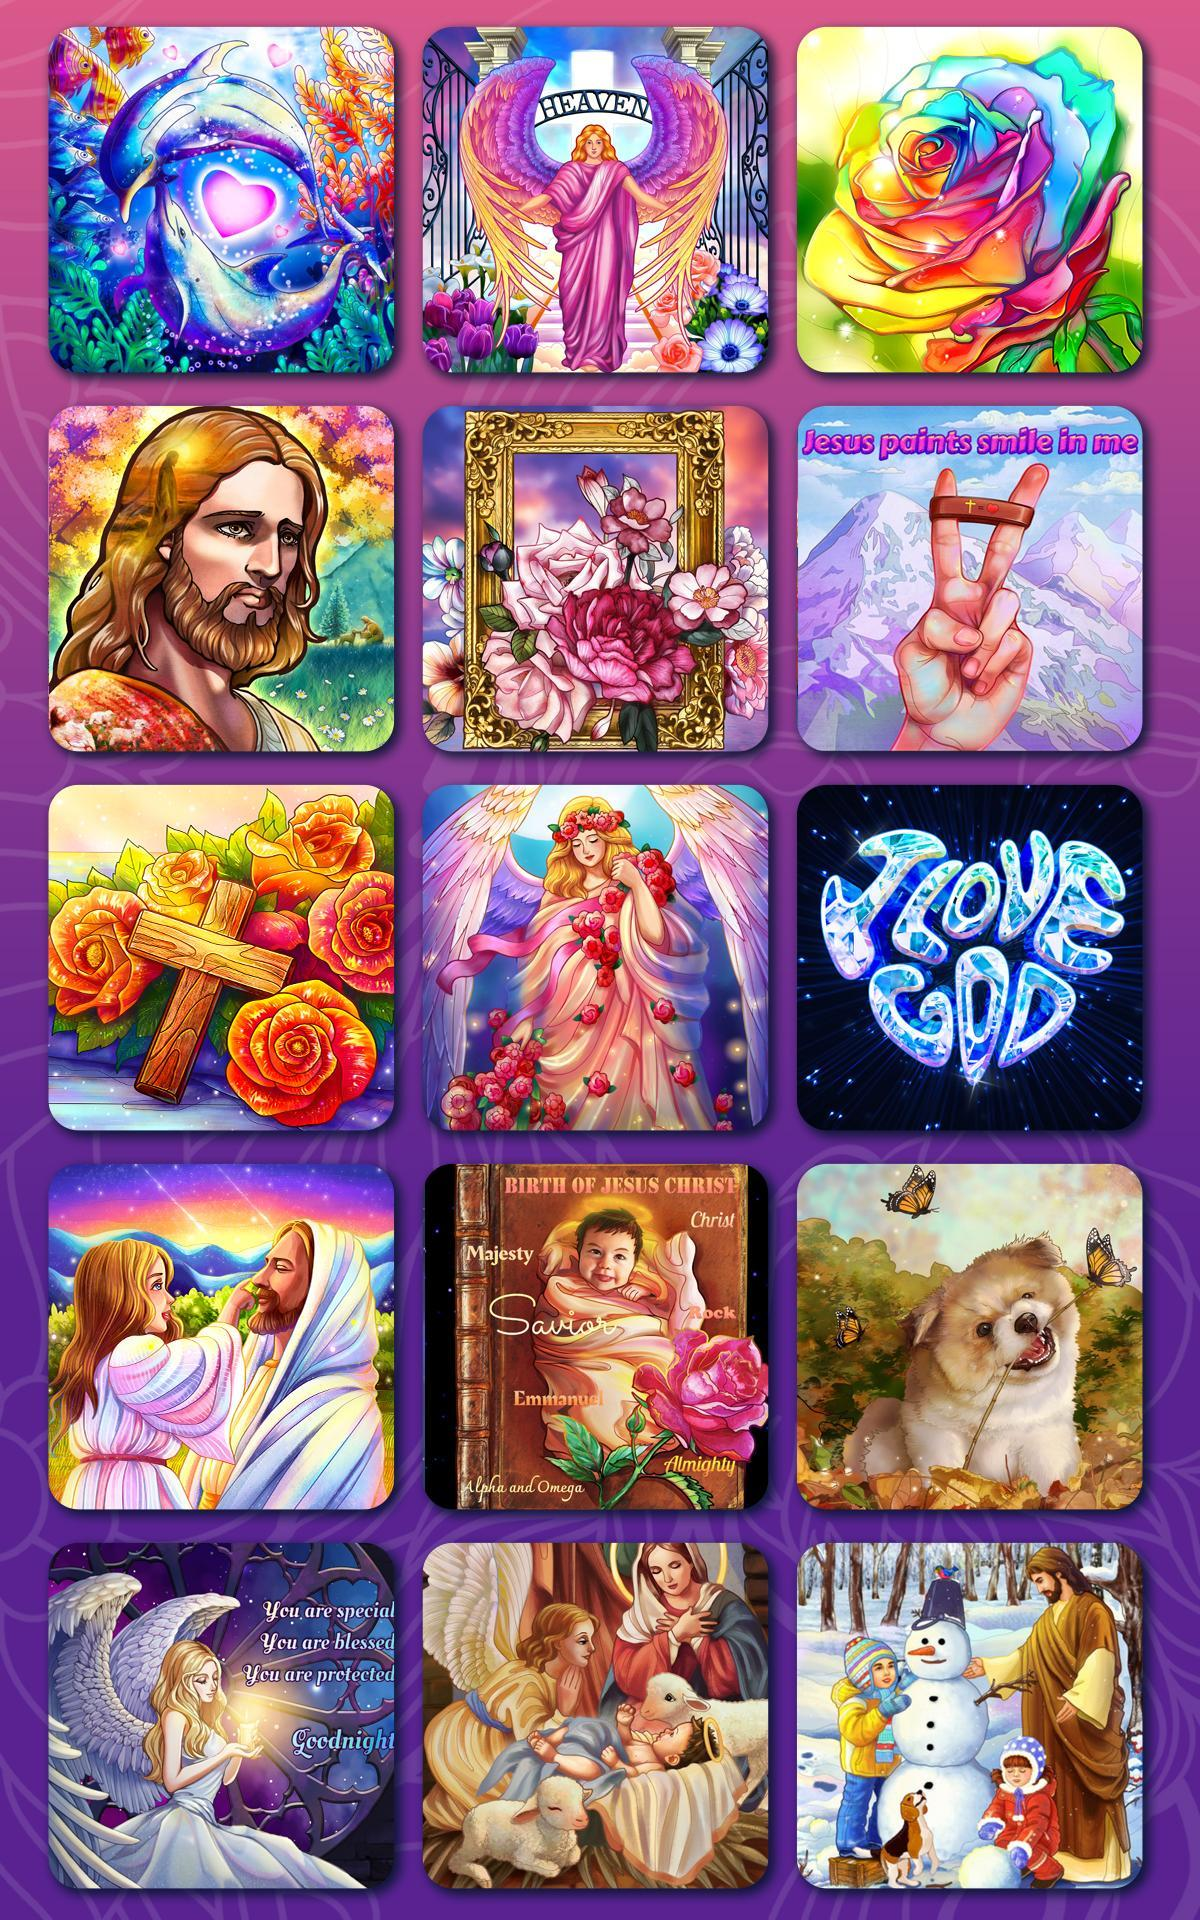 Bible Coloring Paint by Number, Free Bible Games 2.1.14 Screenshot 16